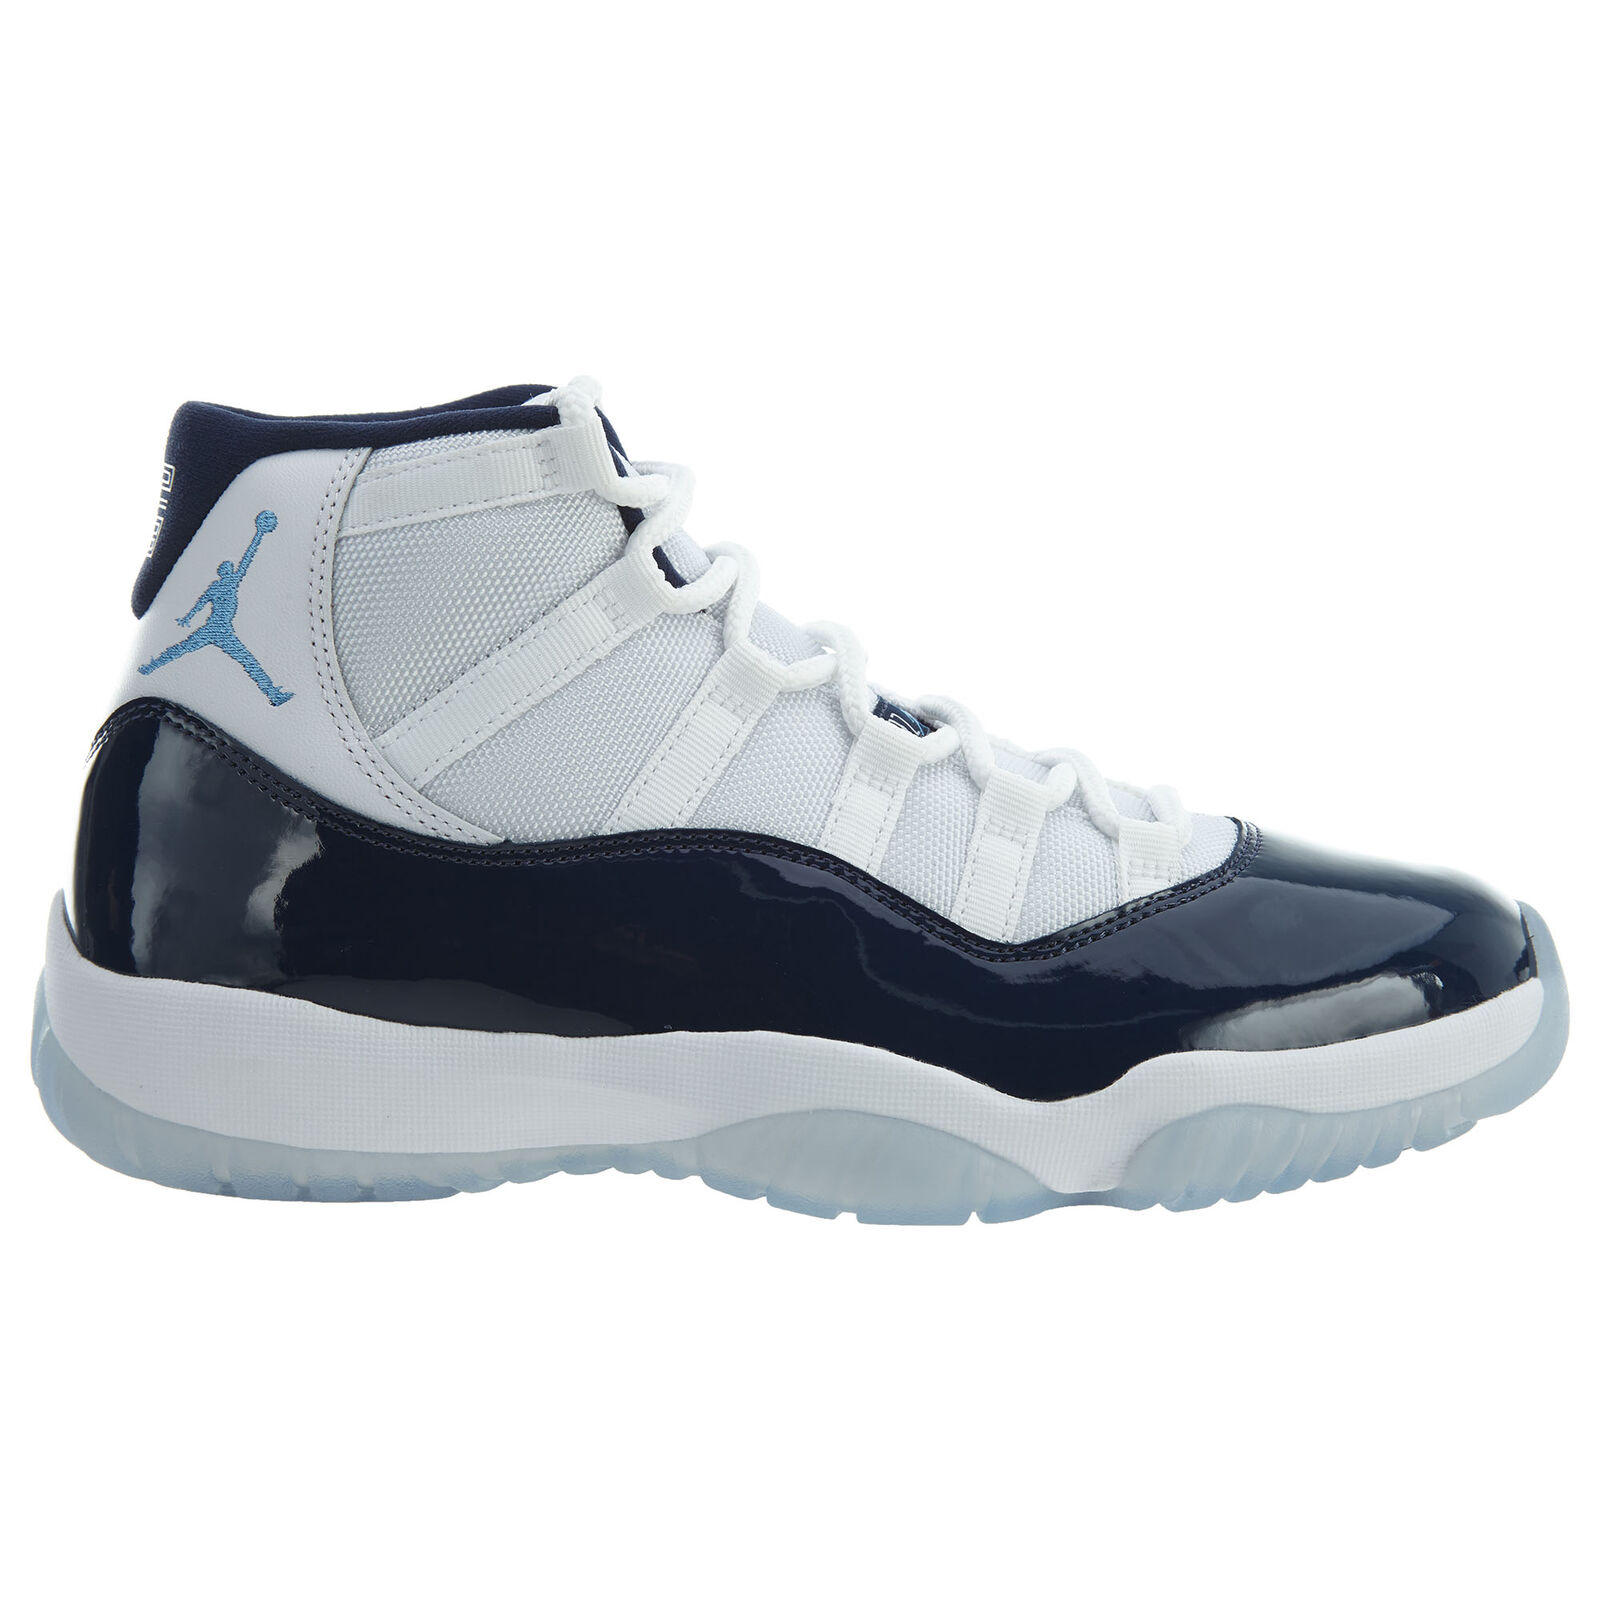 Air Jordan 11 XI Retro Win Like '82 Mens 378037-123 White Navy shoes Size 10.5